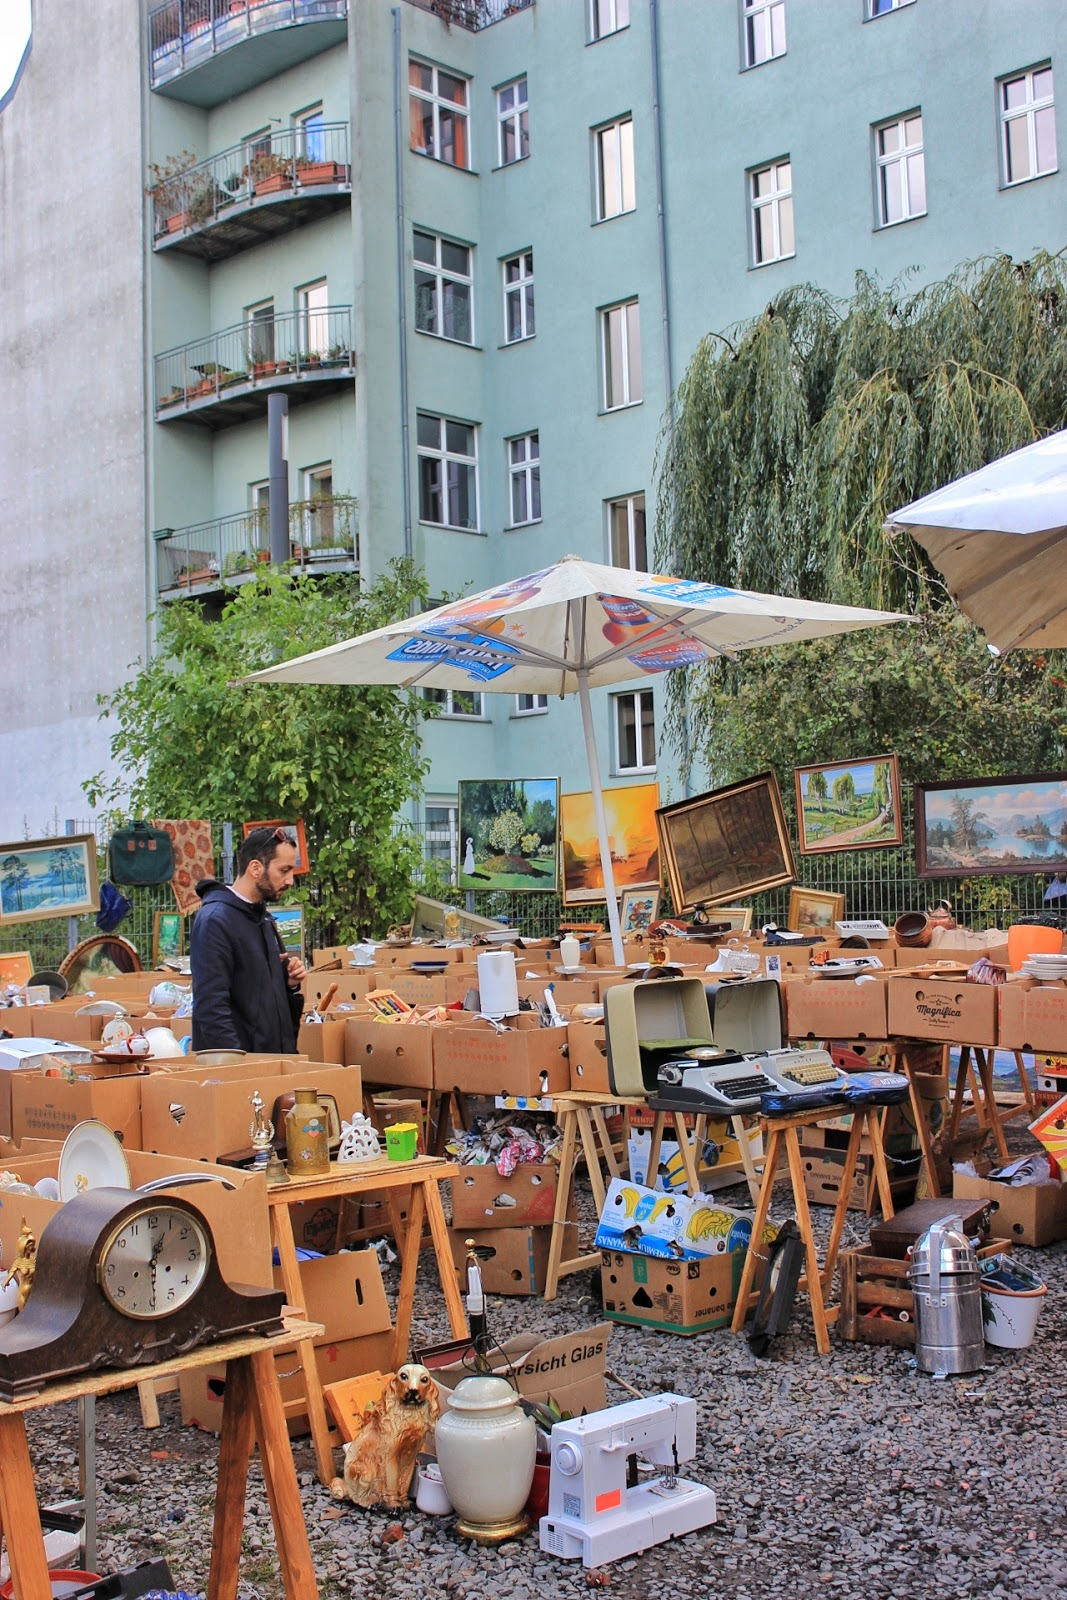 Alternative Things To Do In Berlin: Mauerpark Flea Market